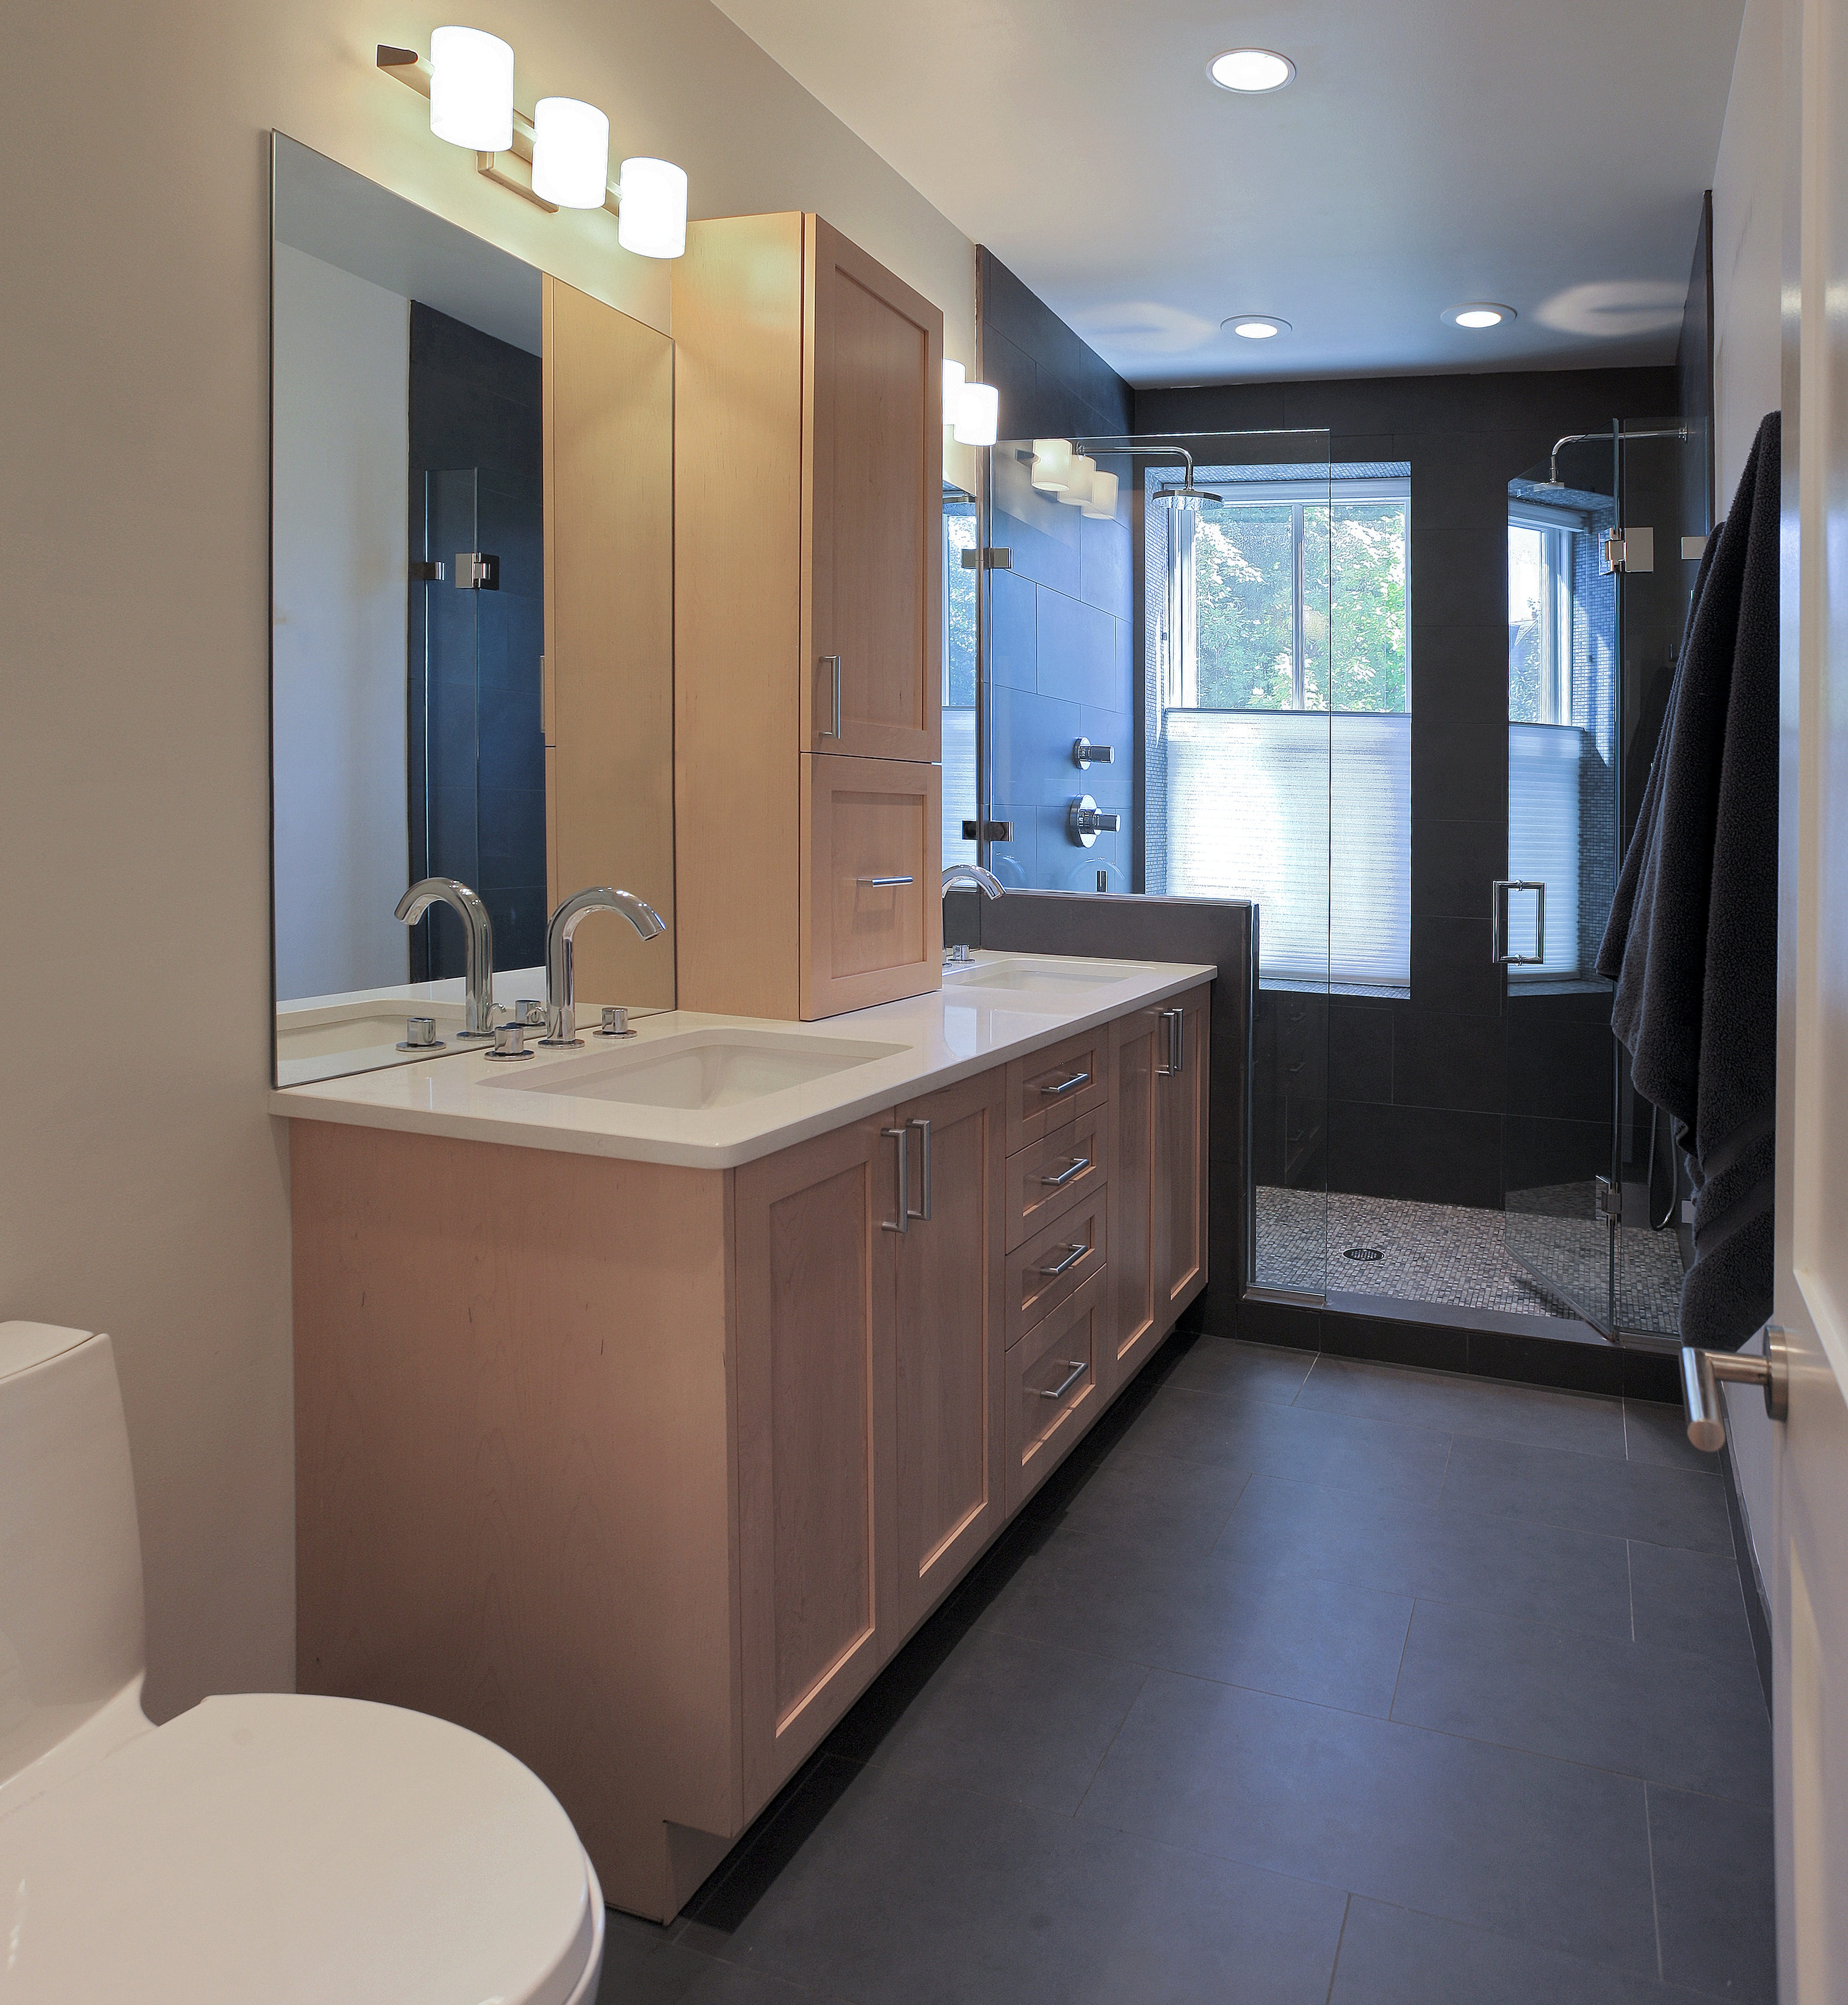 Virginia, Maryland And Washington D.C. Bath Remodeling